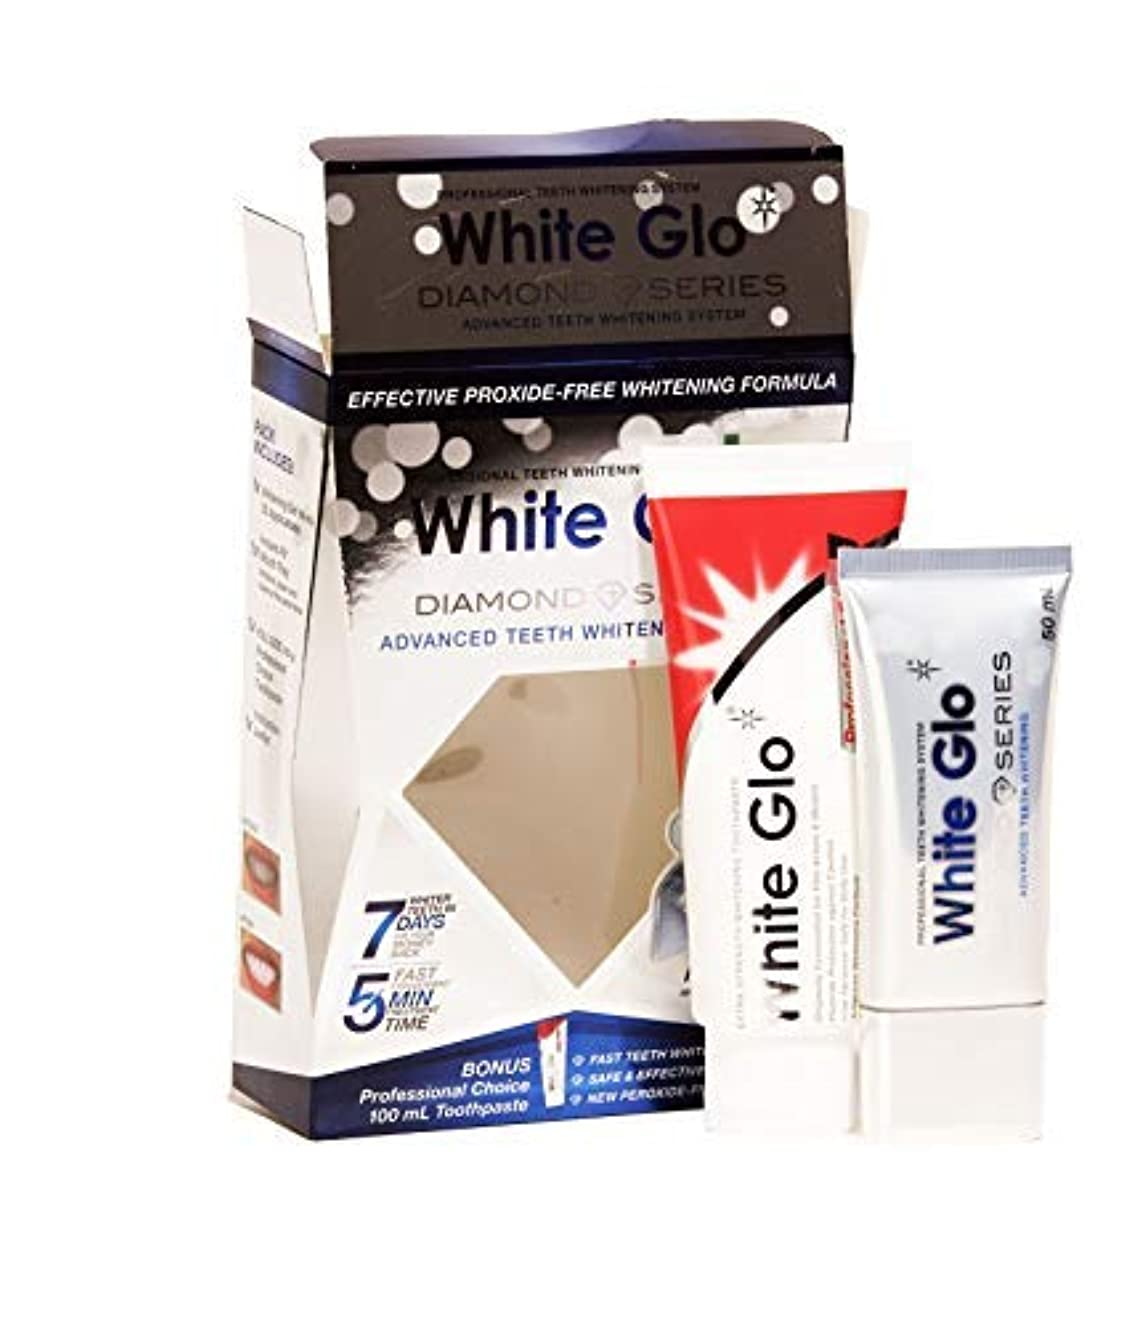 ファシズムイデオロギースーツTeeth Whitening Systems White Glo White Glo Diamond Series Bleaching Set Gel & Paste 50ml + 100ml Australia /...